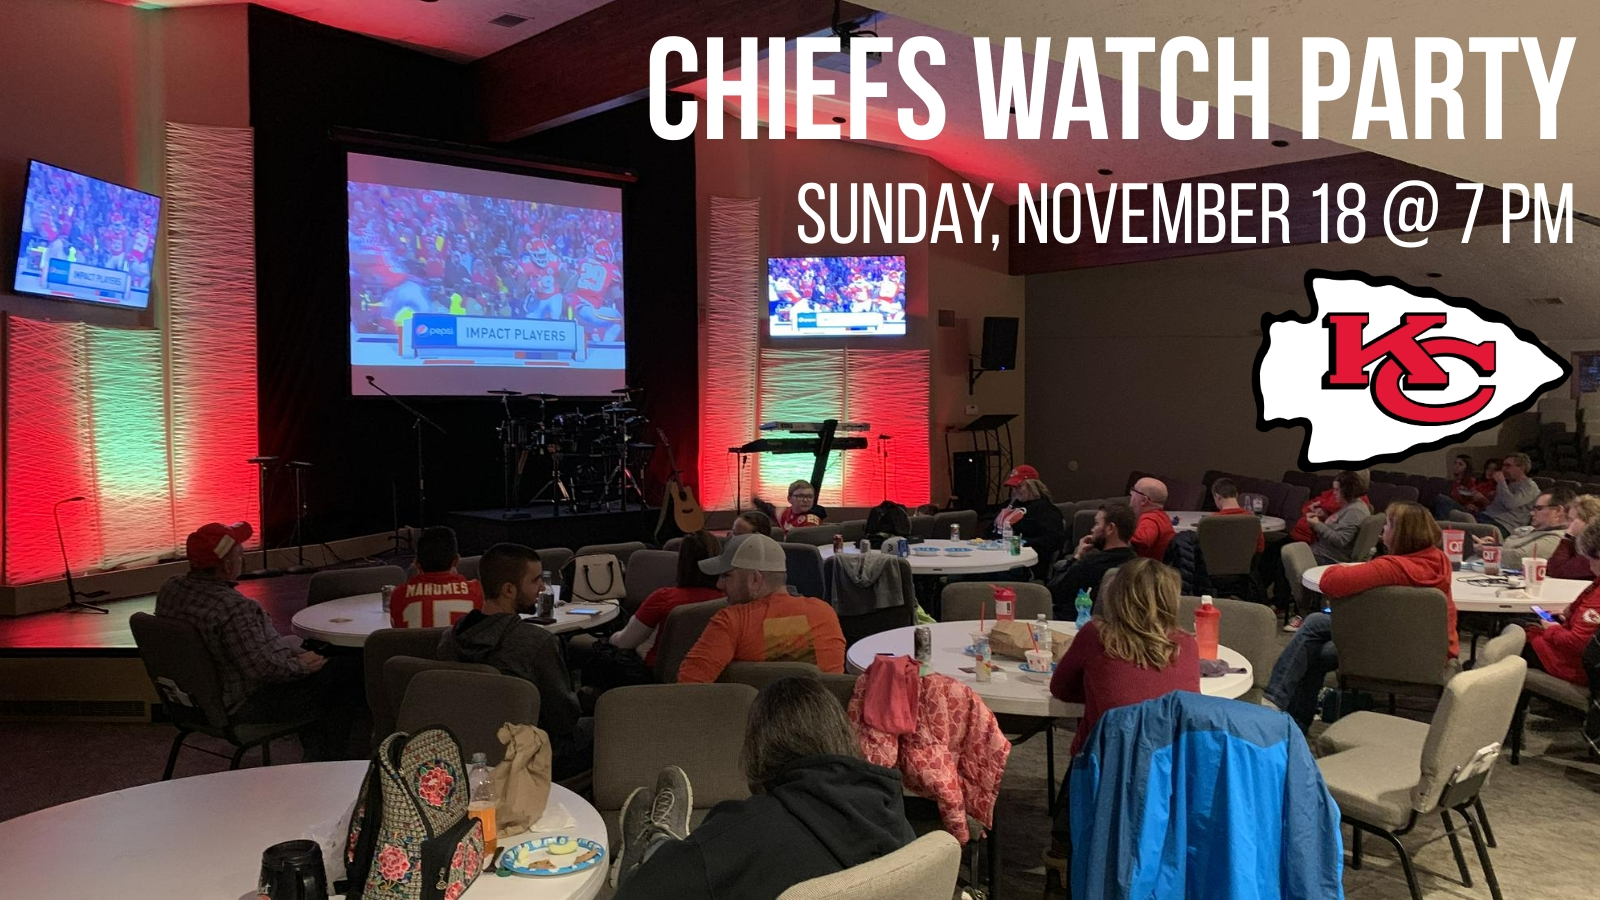 FOG-2019-PreServiceSlides-ChiefsWatchPartyNov18 image